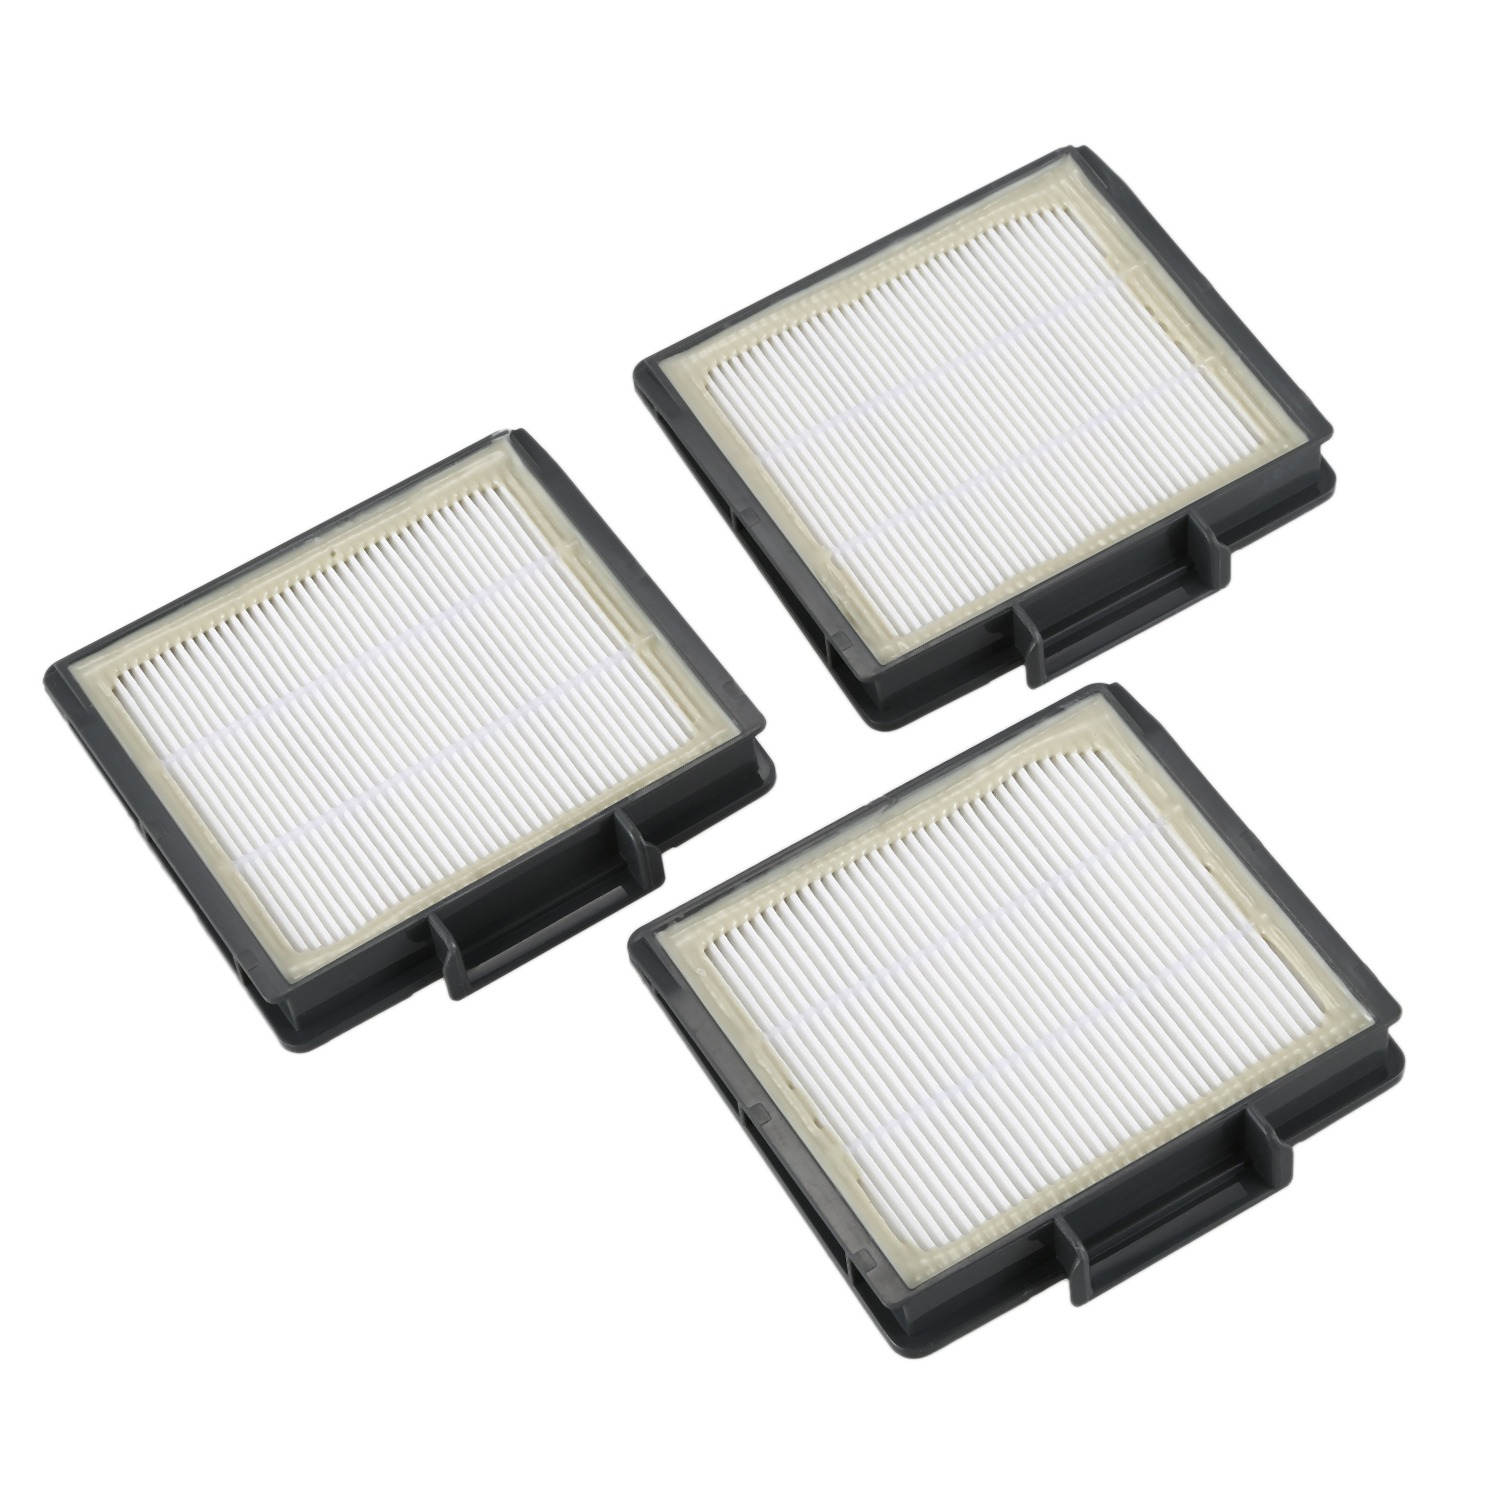 Hospitable 3pcs Pre-motor Hepa Filters For Shark Ion Robot Rv700_n Rv720_n Rv850 Rv851wv Rv850brn/wv Vacuum Cleaner Part Fit # Rvffk950 Cleaning Appliance Parts